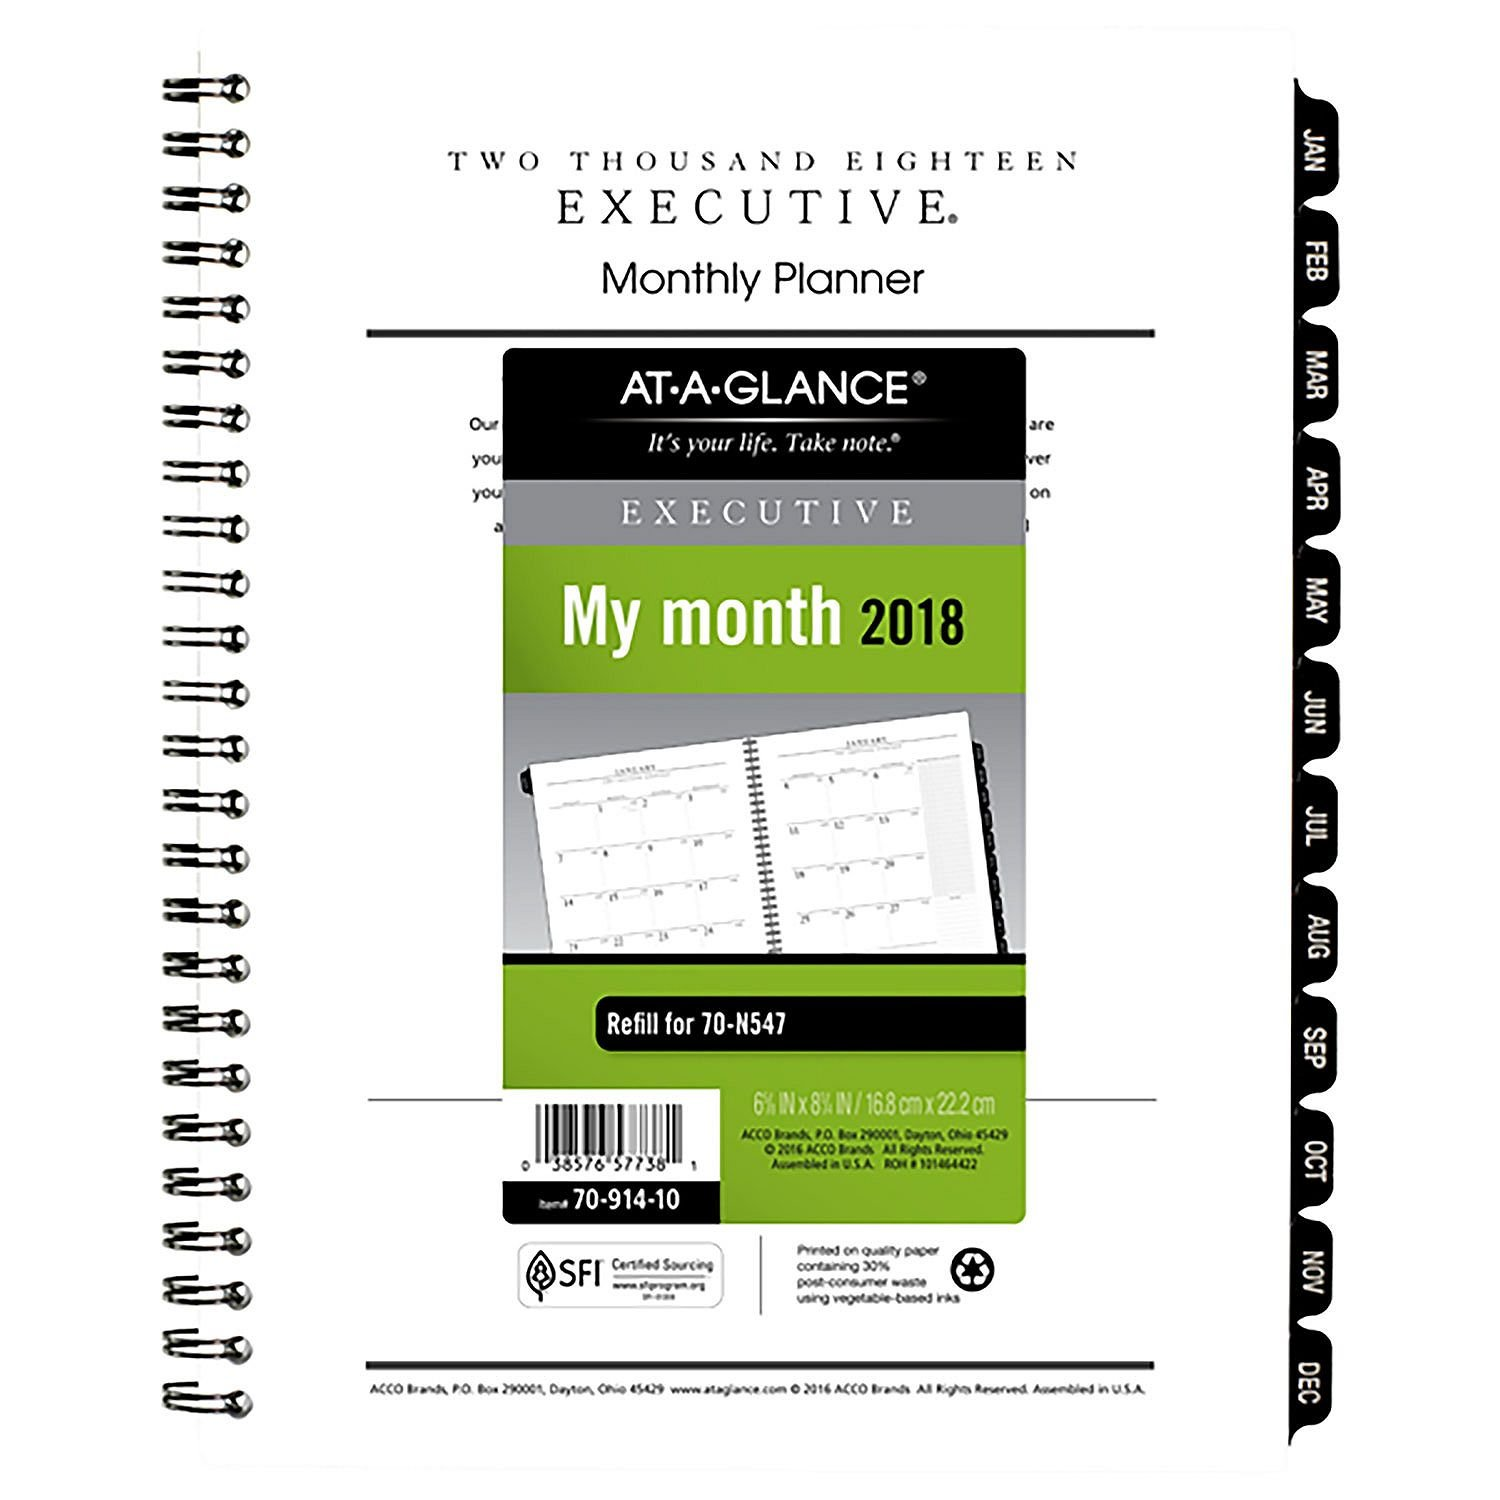 AT-A-GLANCE Executive Monthly Planner Refill, 6 5/8 x 8 3/4, 2019